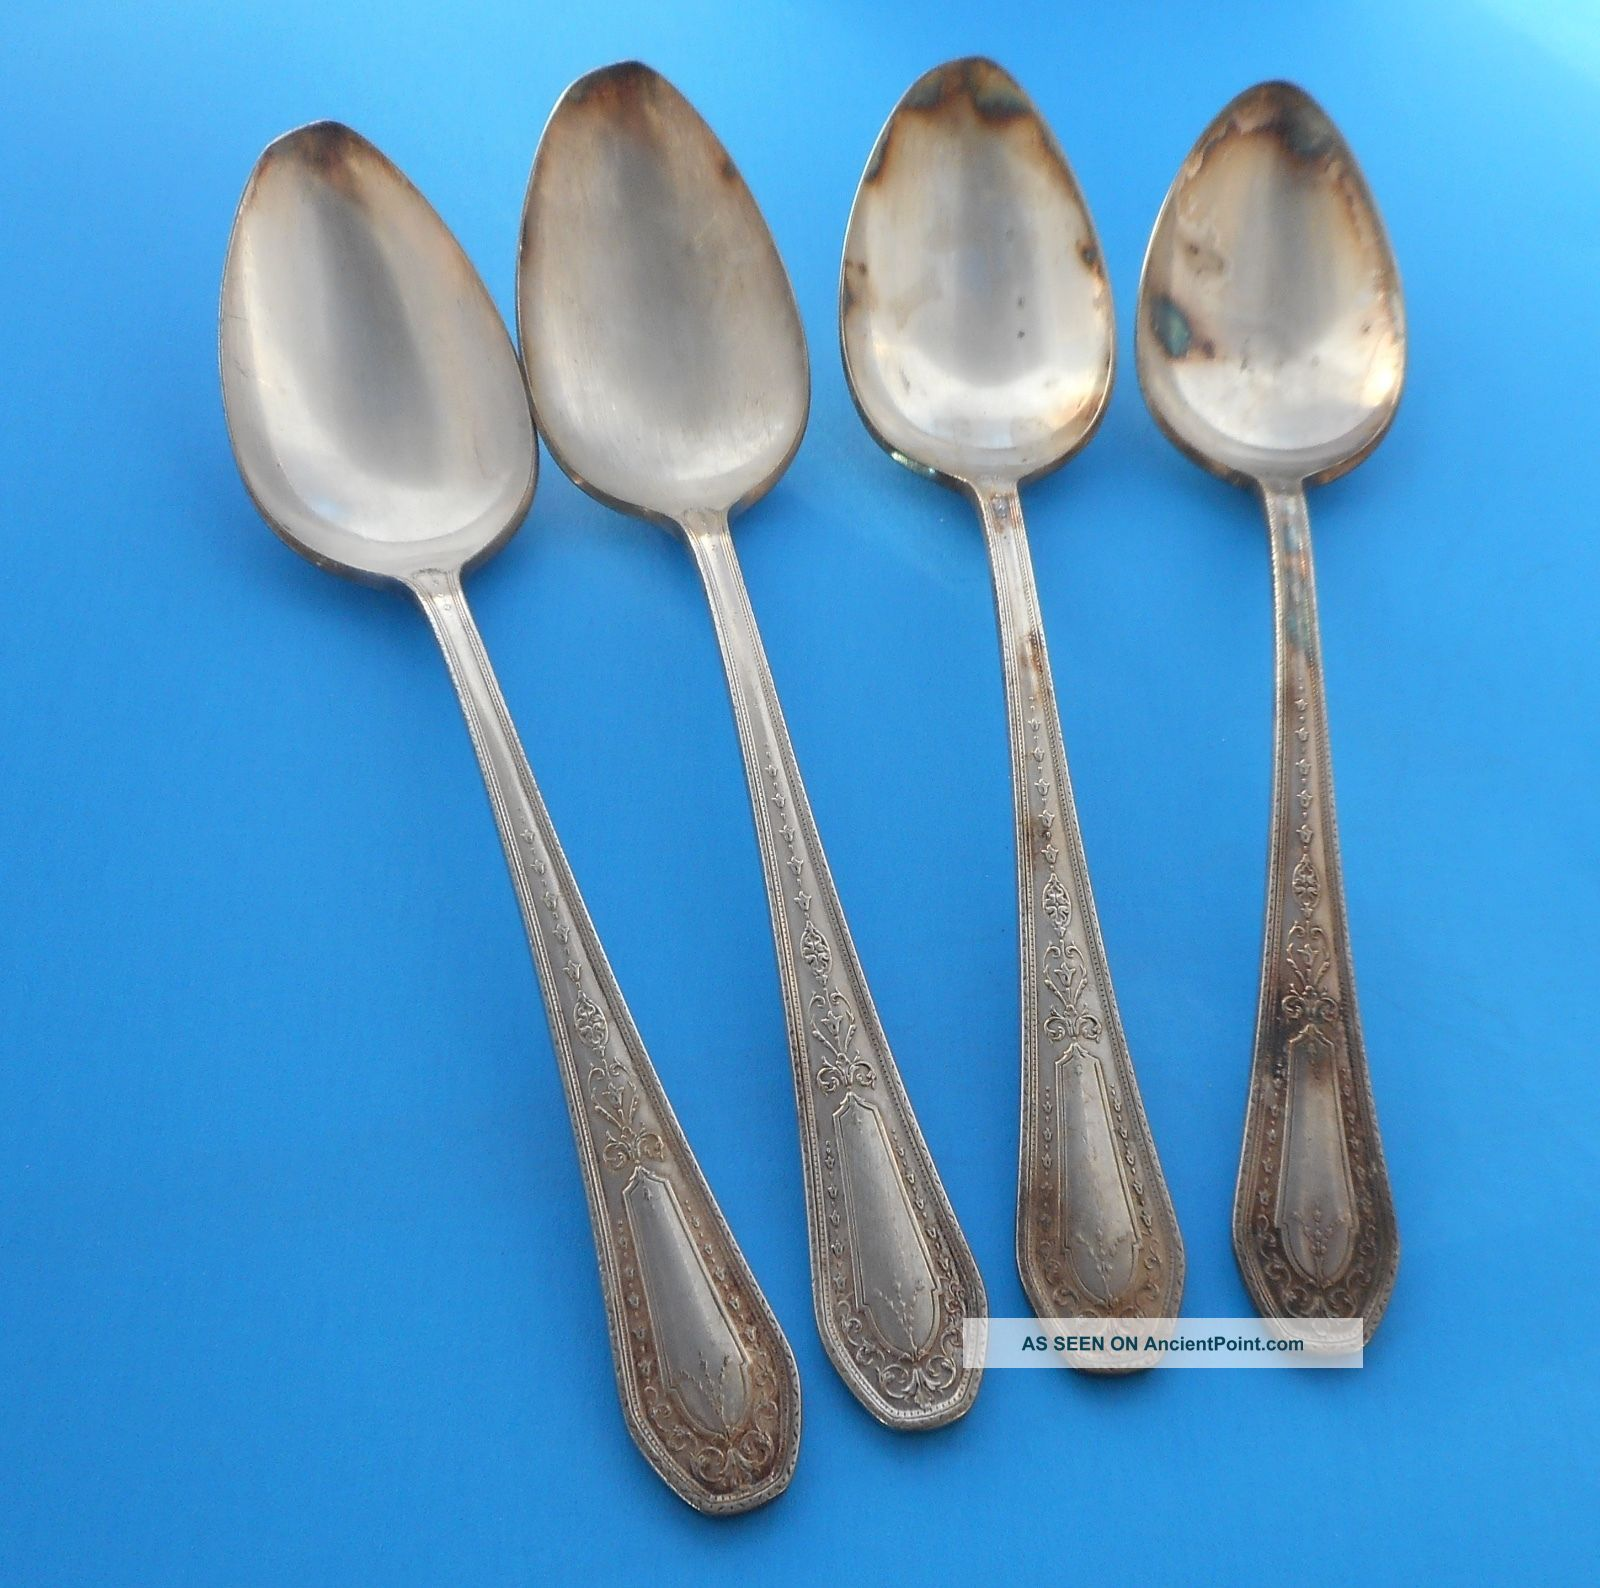 Oneida Community 1926 Hampton Court Silverplate Flatware Serving Spoons (4) Flatware & Silverware photo